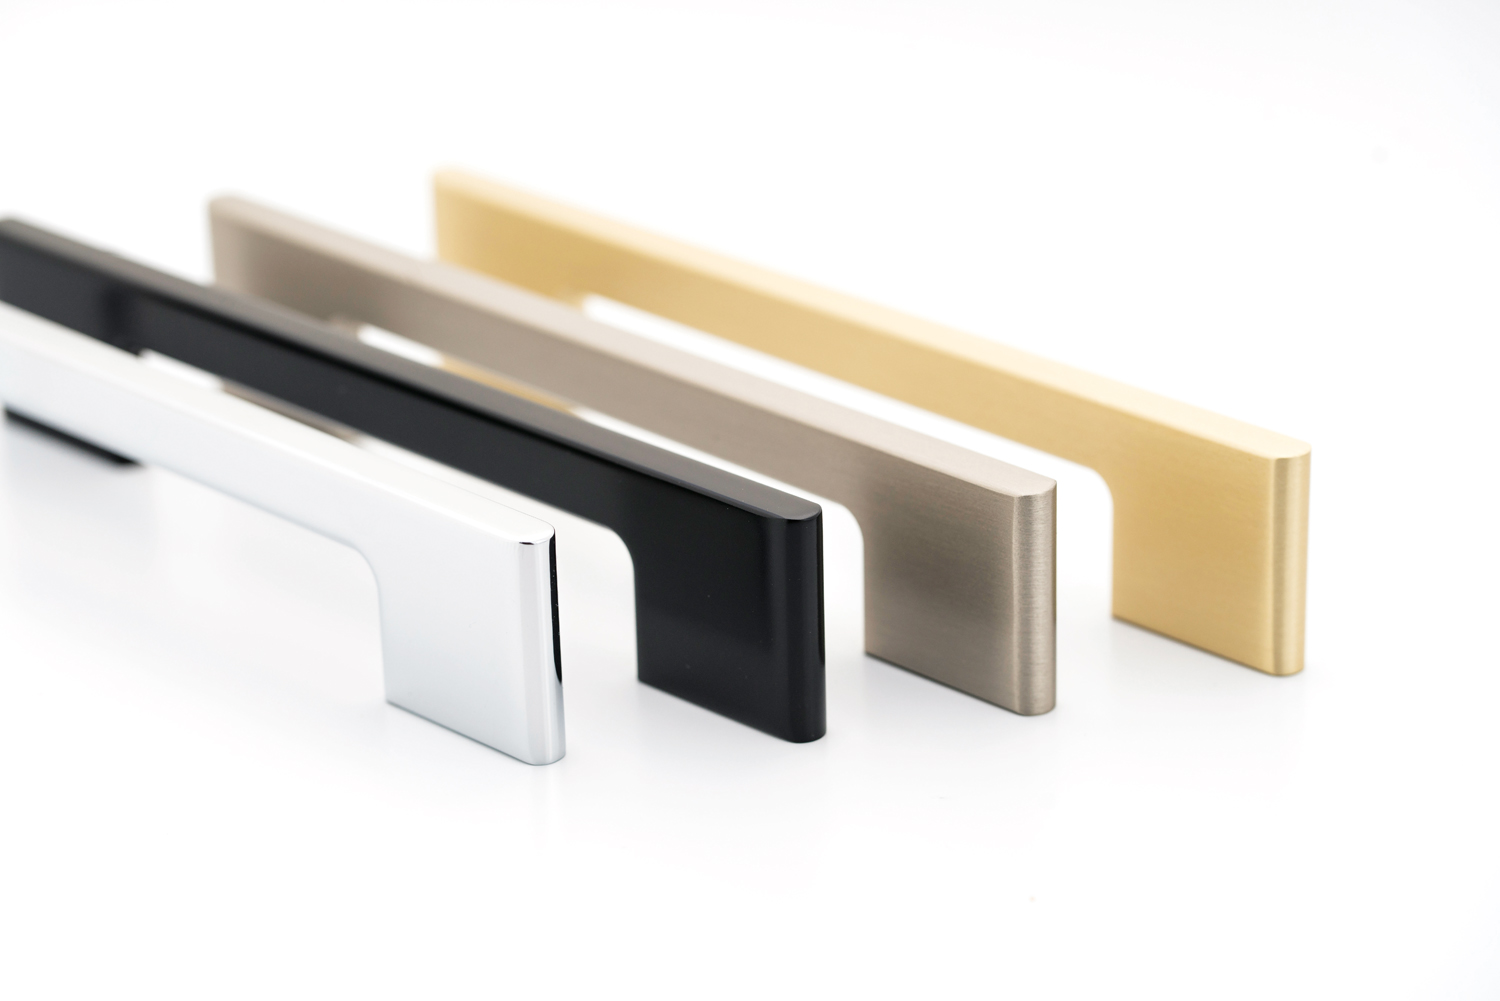 Luxurious handles to bring your kitchen into the roaring '20s